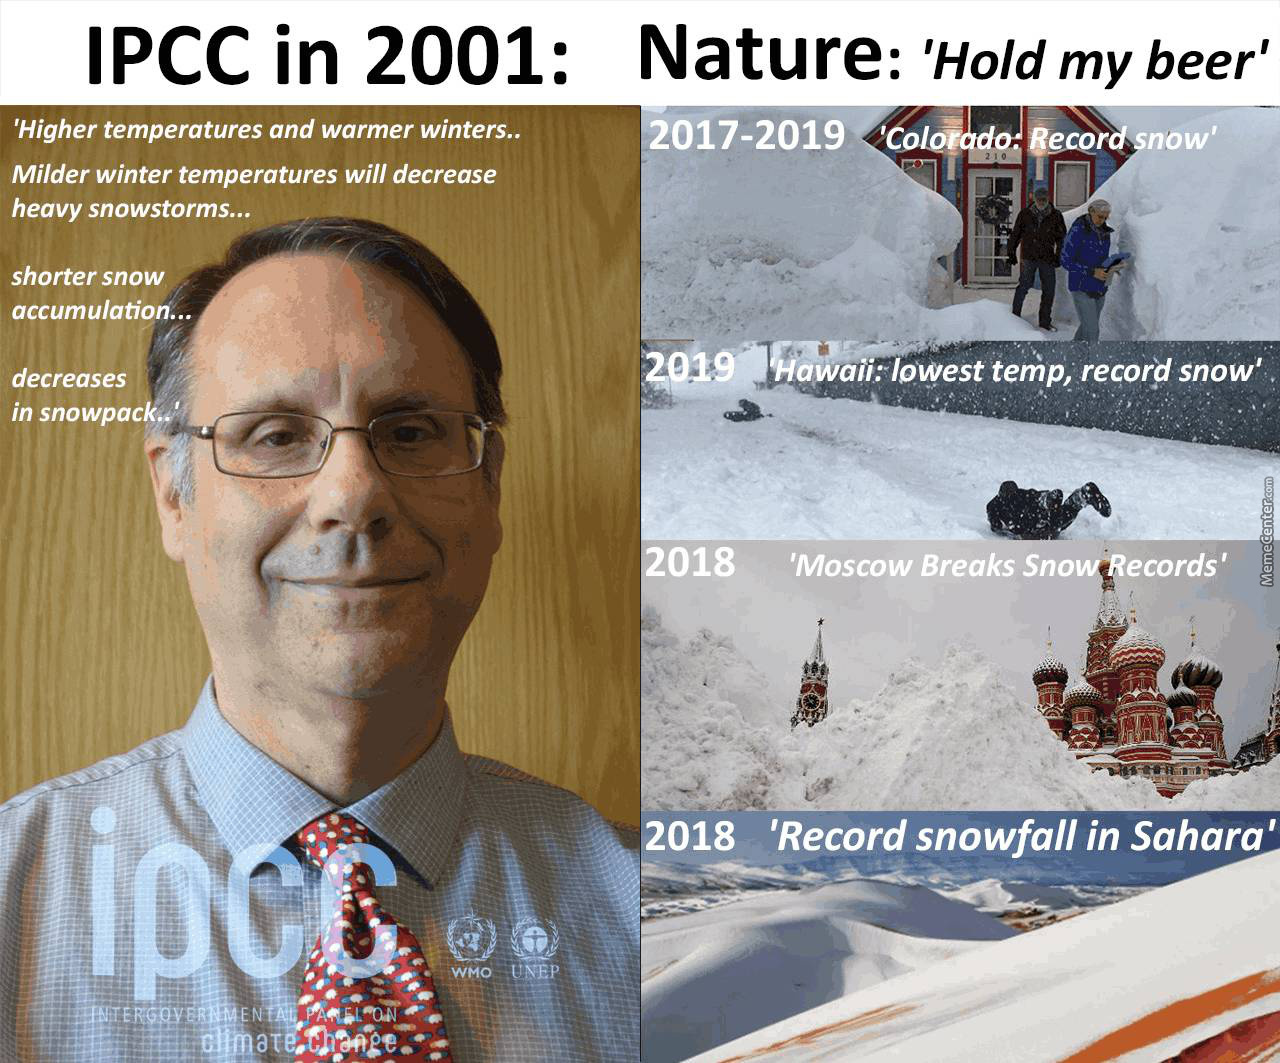 Ipcc: No More Snow - Nature: Hold My Beer